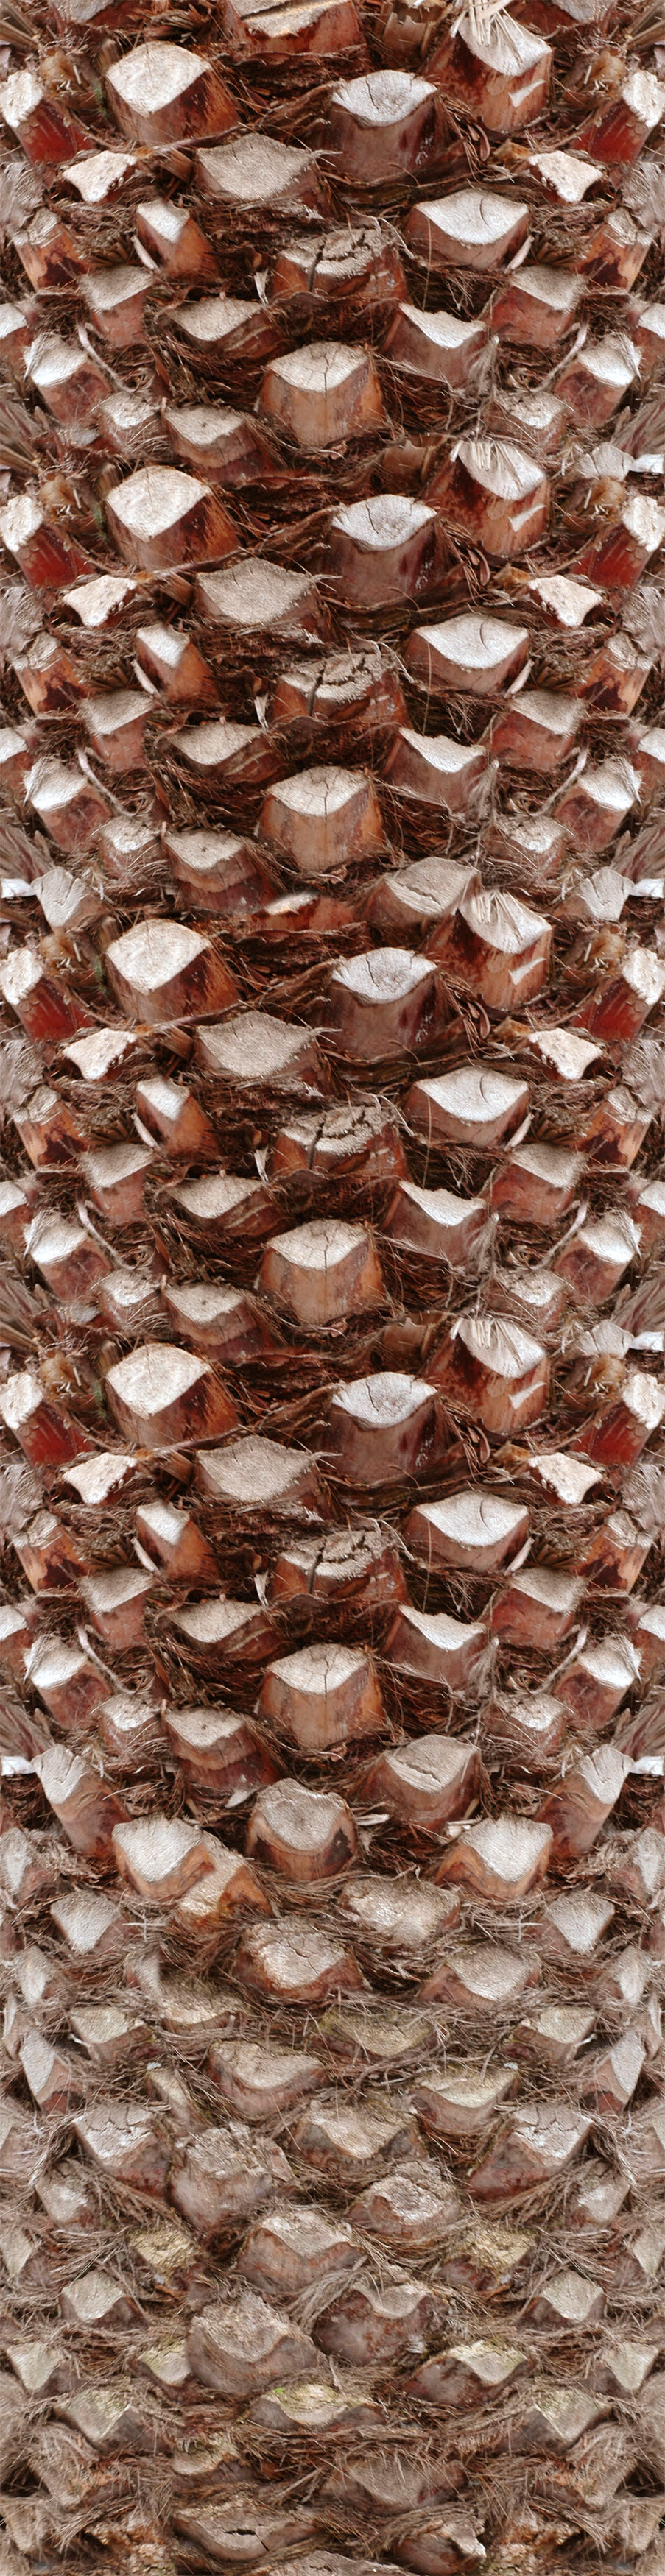 palm tree bark download free textures   a palm   Pinterest   Tree ...